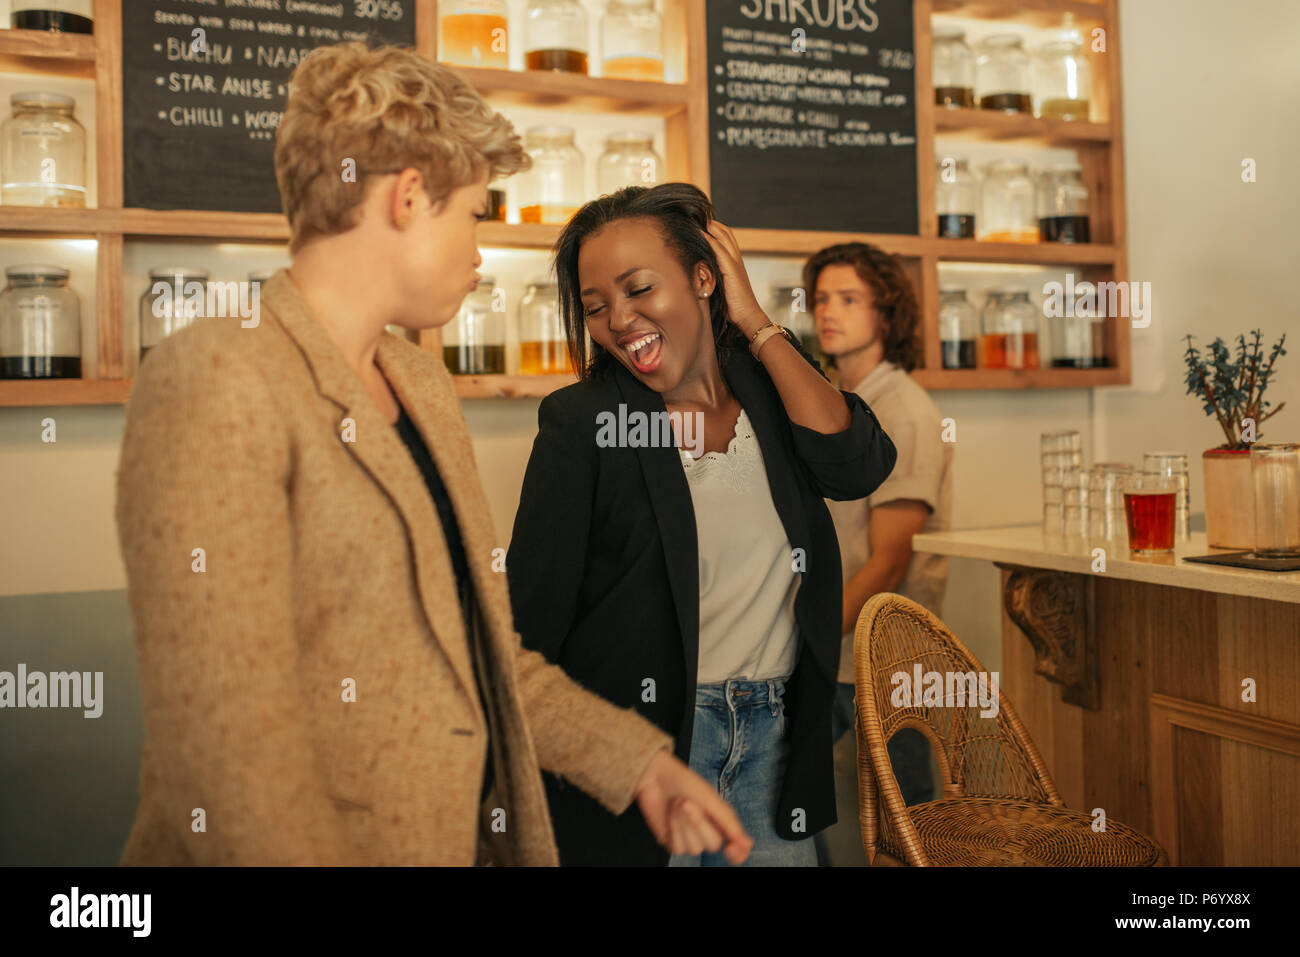 Two laughing girlfriends dancing together in a bar - Stock Image